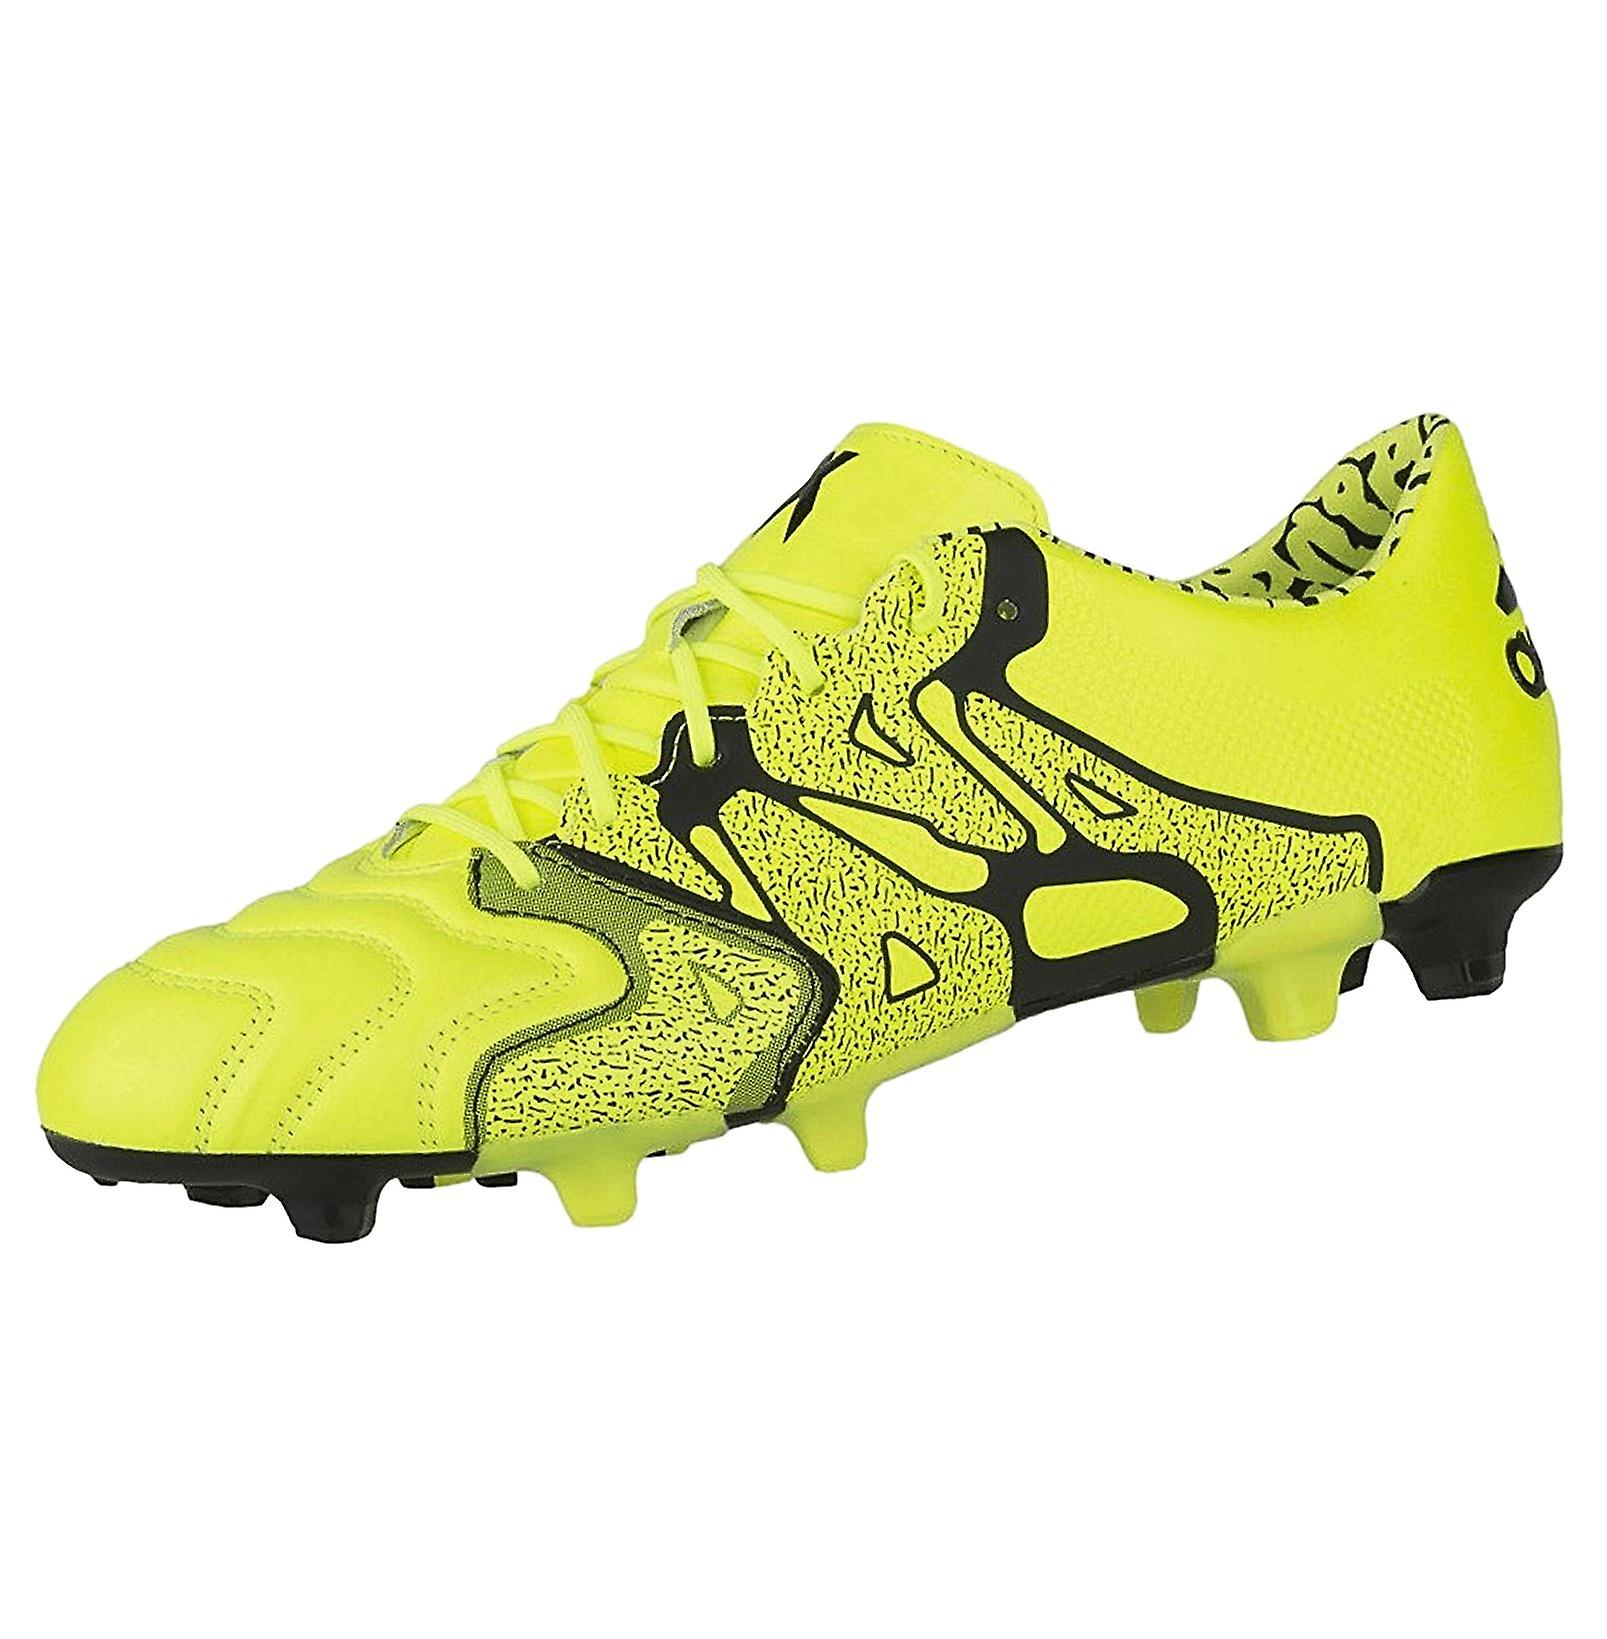 adidas Performance Men's X15.1 FG/AG Firm / Artificial Ground Leather Football Boots